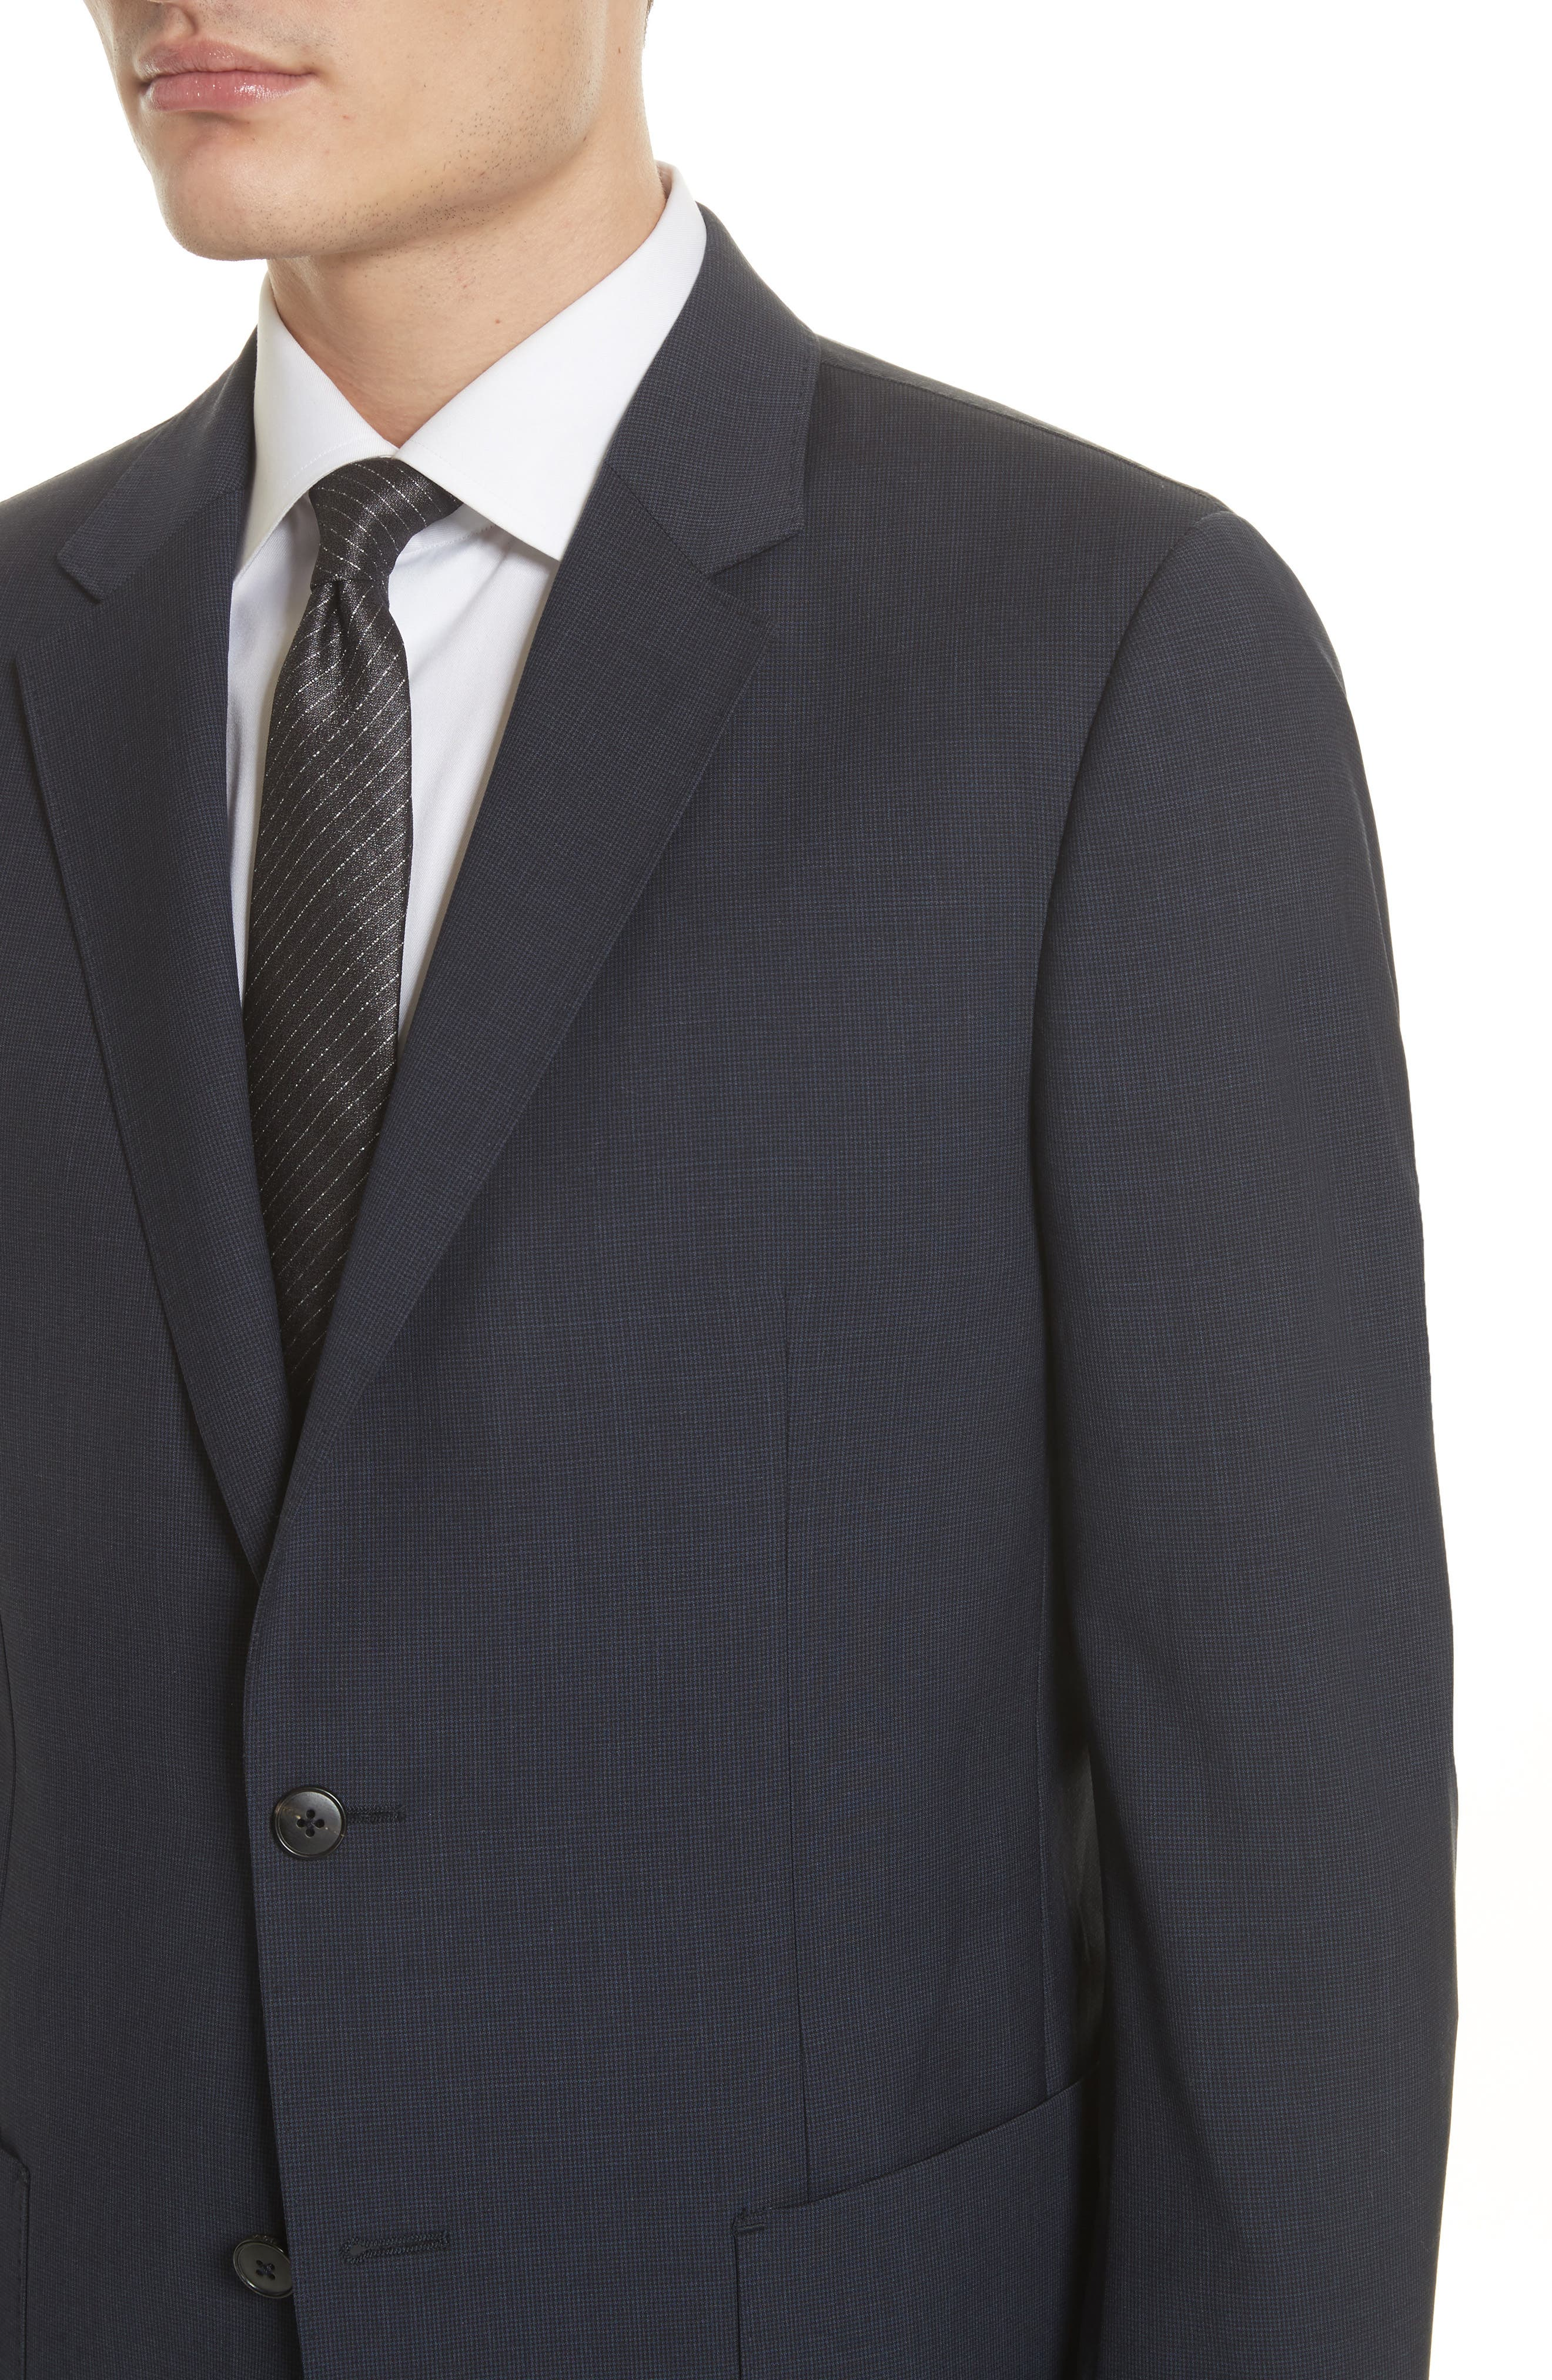 TECHMERINO<sup>™</sup> Wash & Go Trim Fit Solid Wool Suit,                             Alternate thumbnail 5, color,                             412